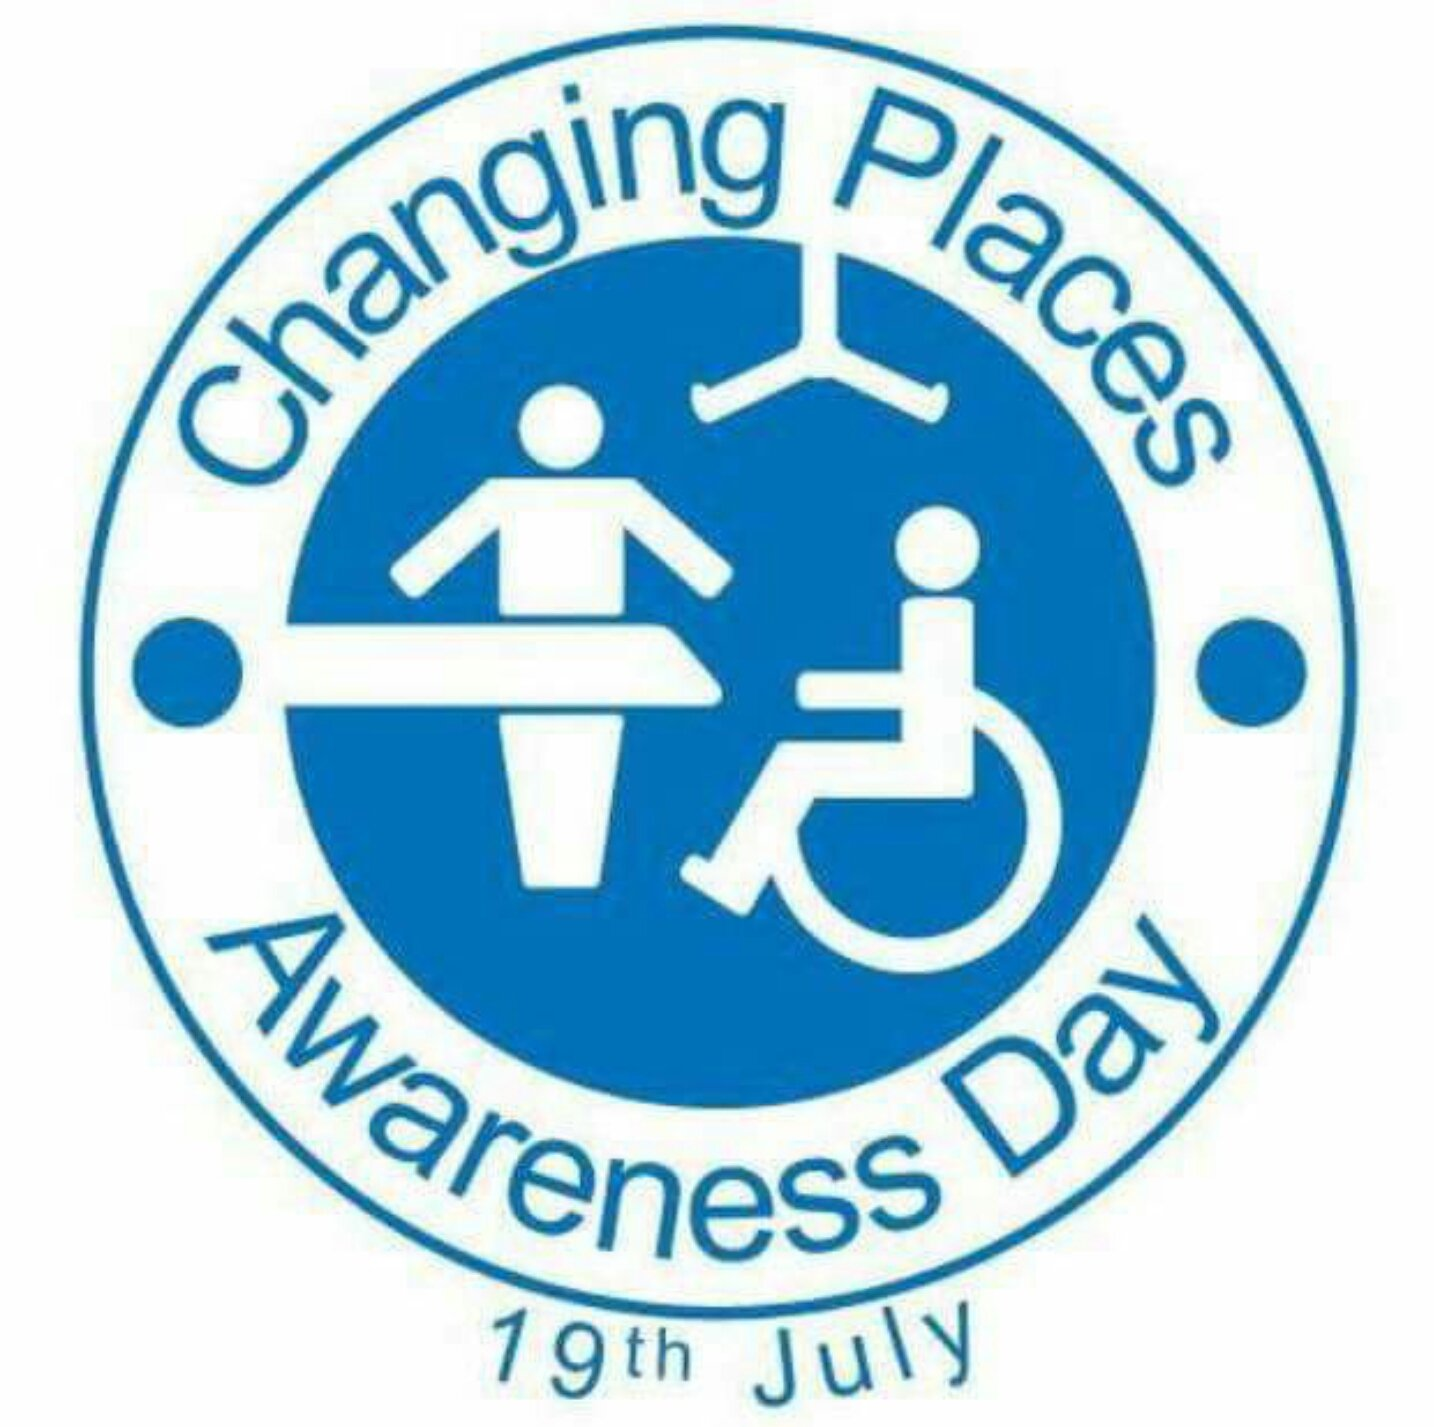 Spending every waking moment today thinking and talking about accessible #ChangingPlaces toilets! #incLOOsion #CPAD https://t.co/deVuJYzaT3